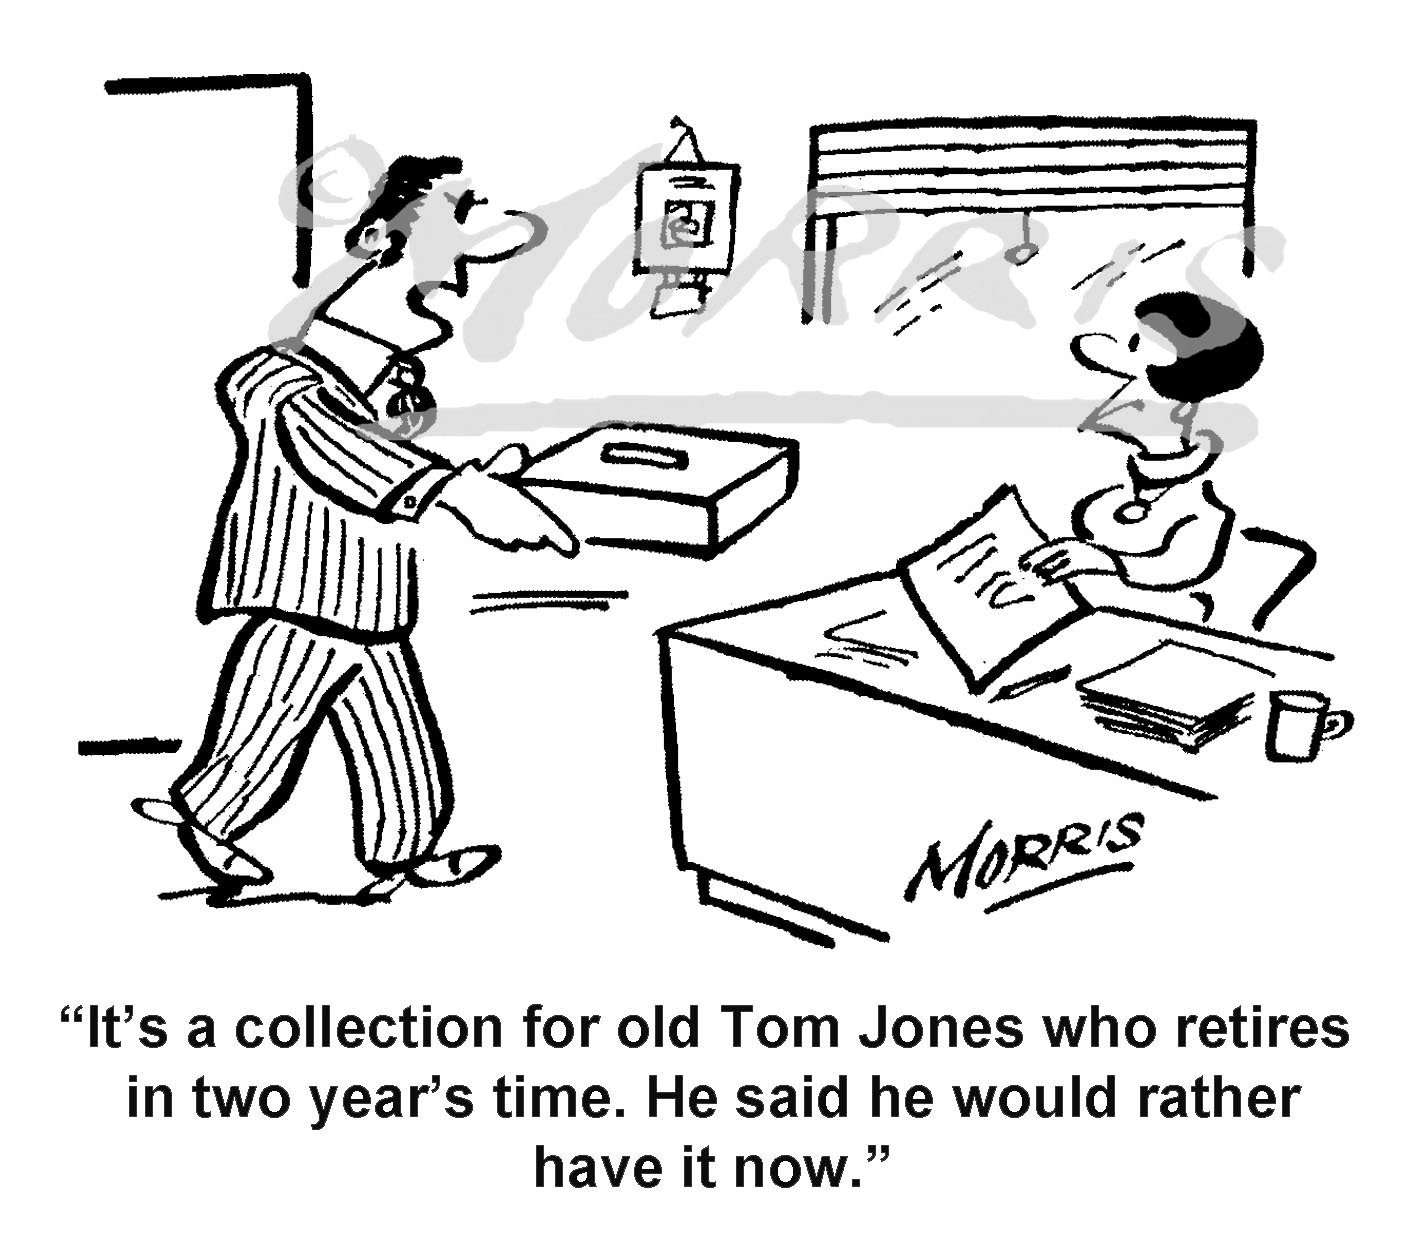 Retirement collection cartoon – Ref: 8477bw